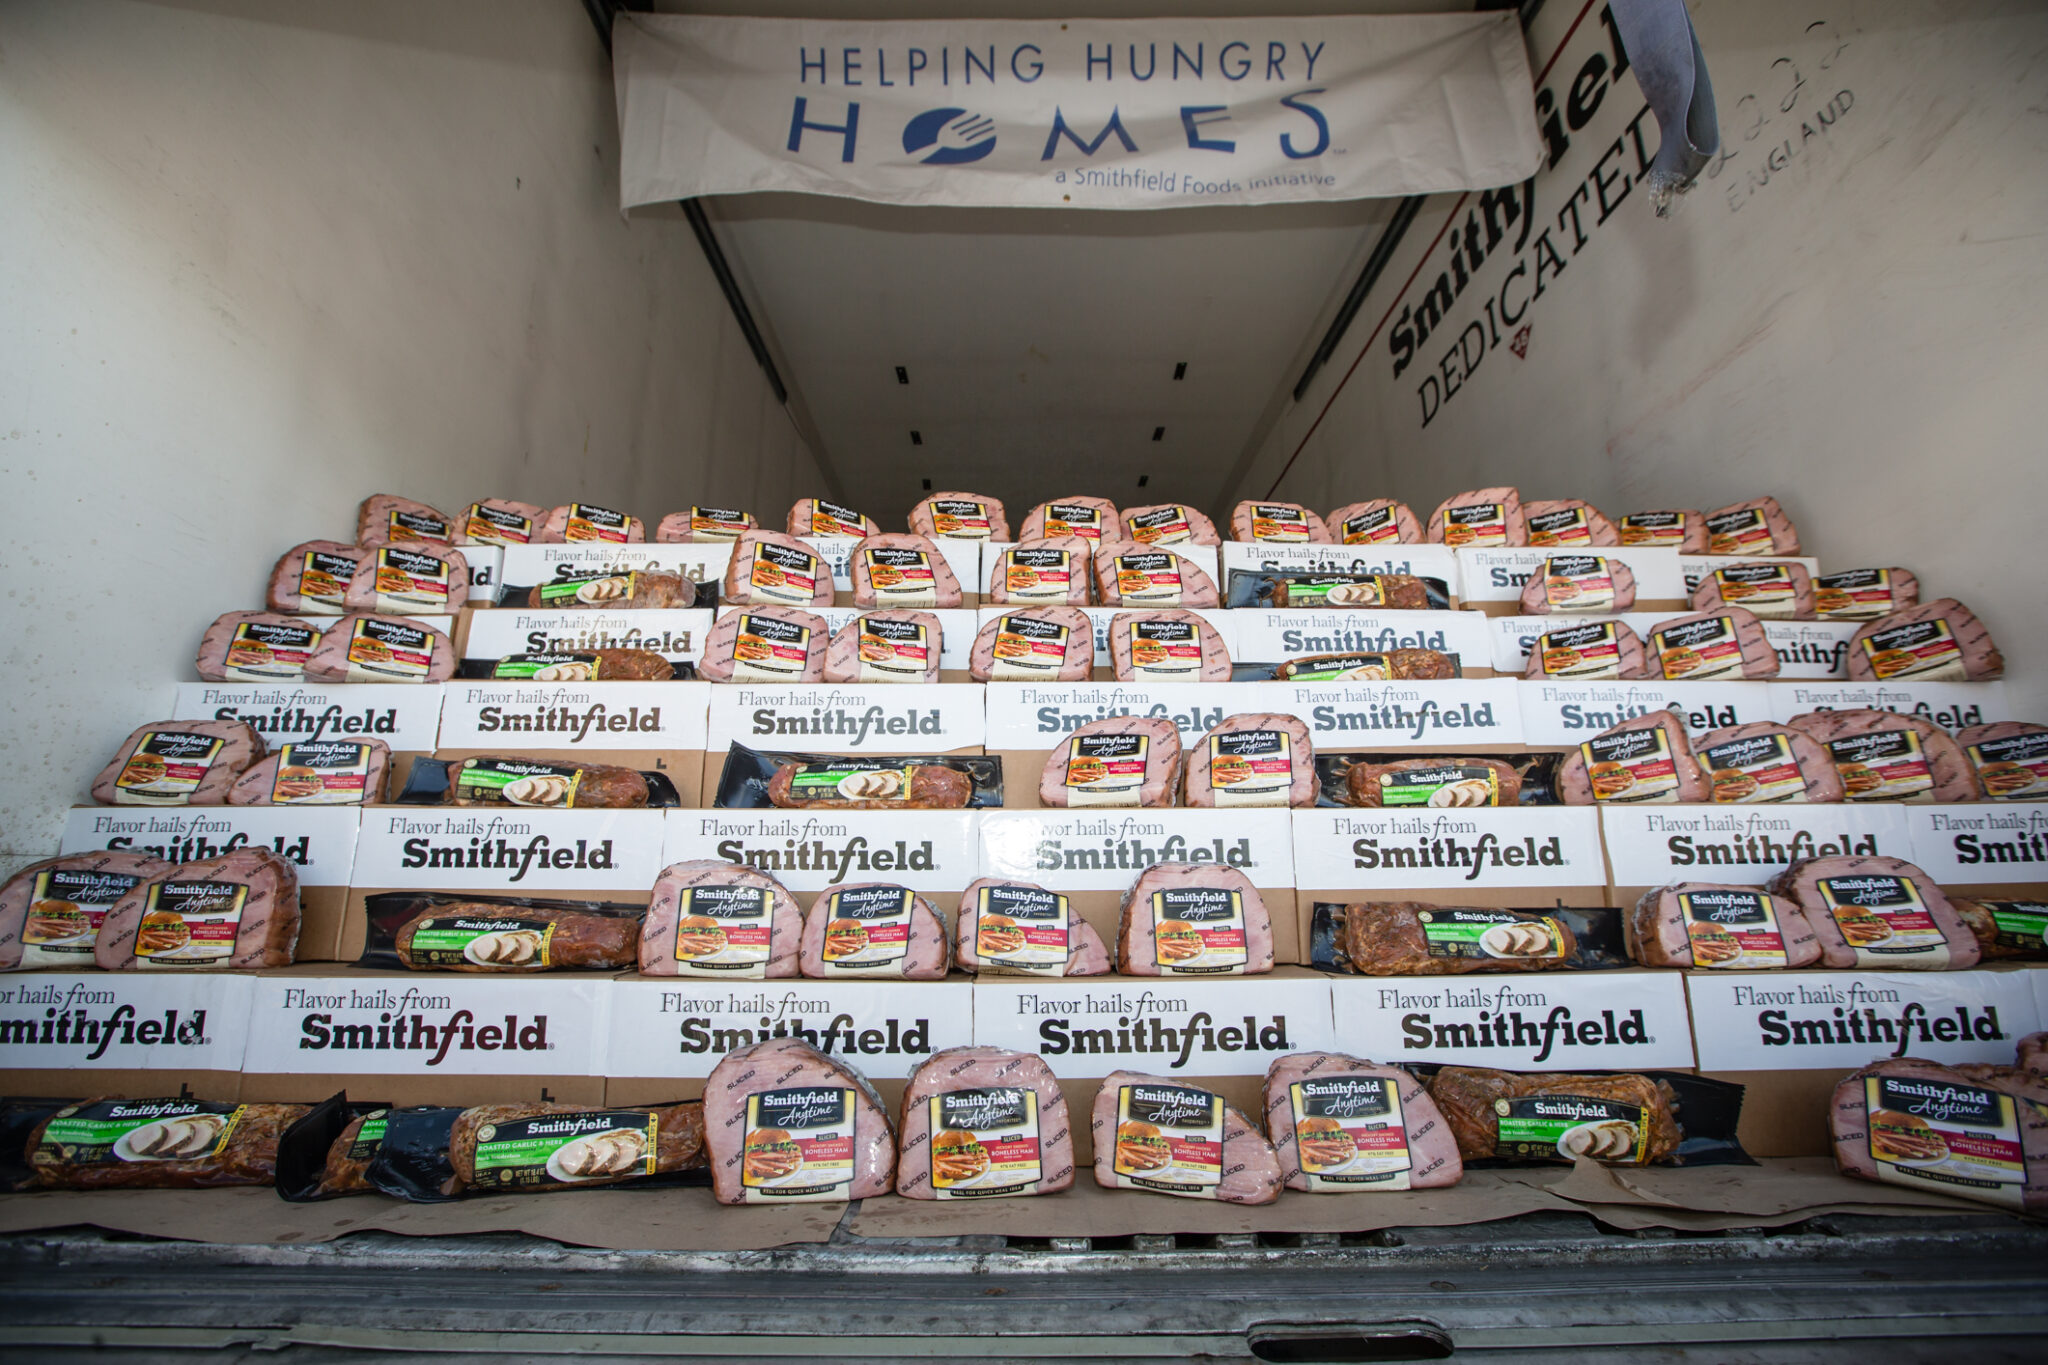 Smithfield Helping Hungry Homes